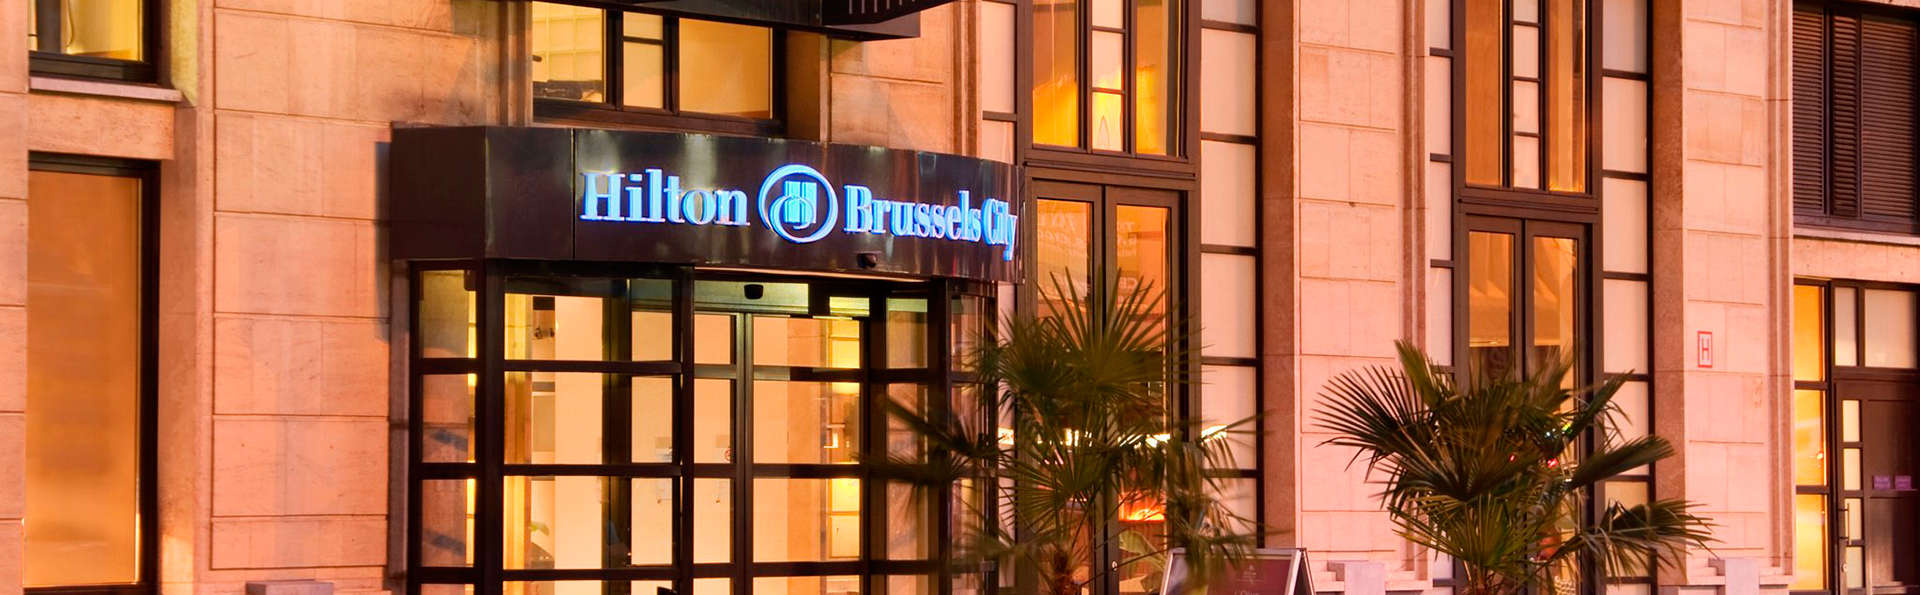 Hilton Brussels City - EDIT_front.jpg